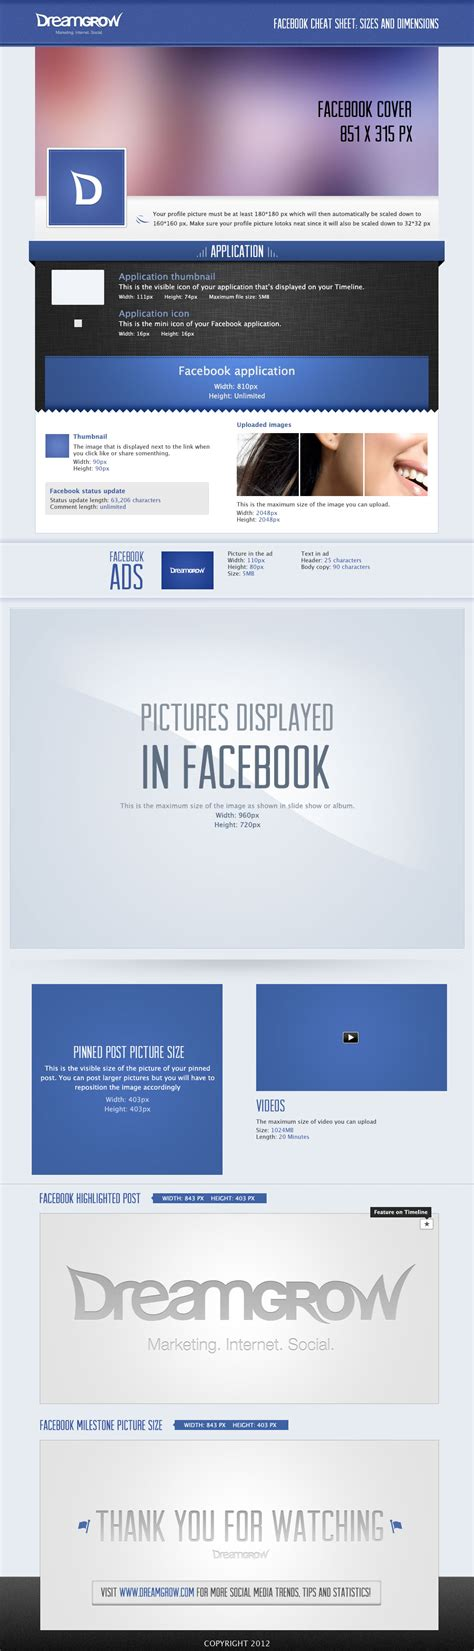 facebook cheat sheet image size and dimensions infographic updated facebook cheat sheet netweave social